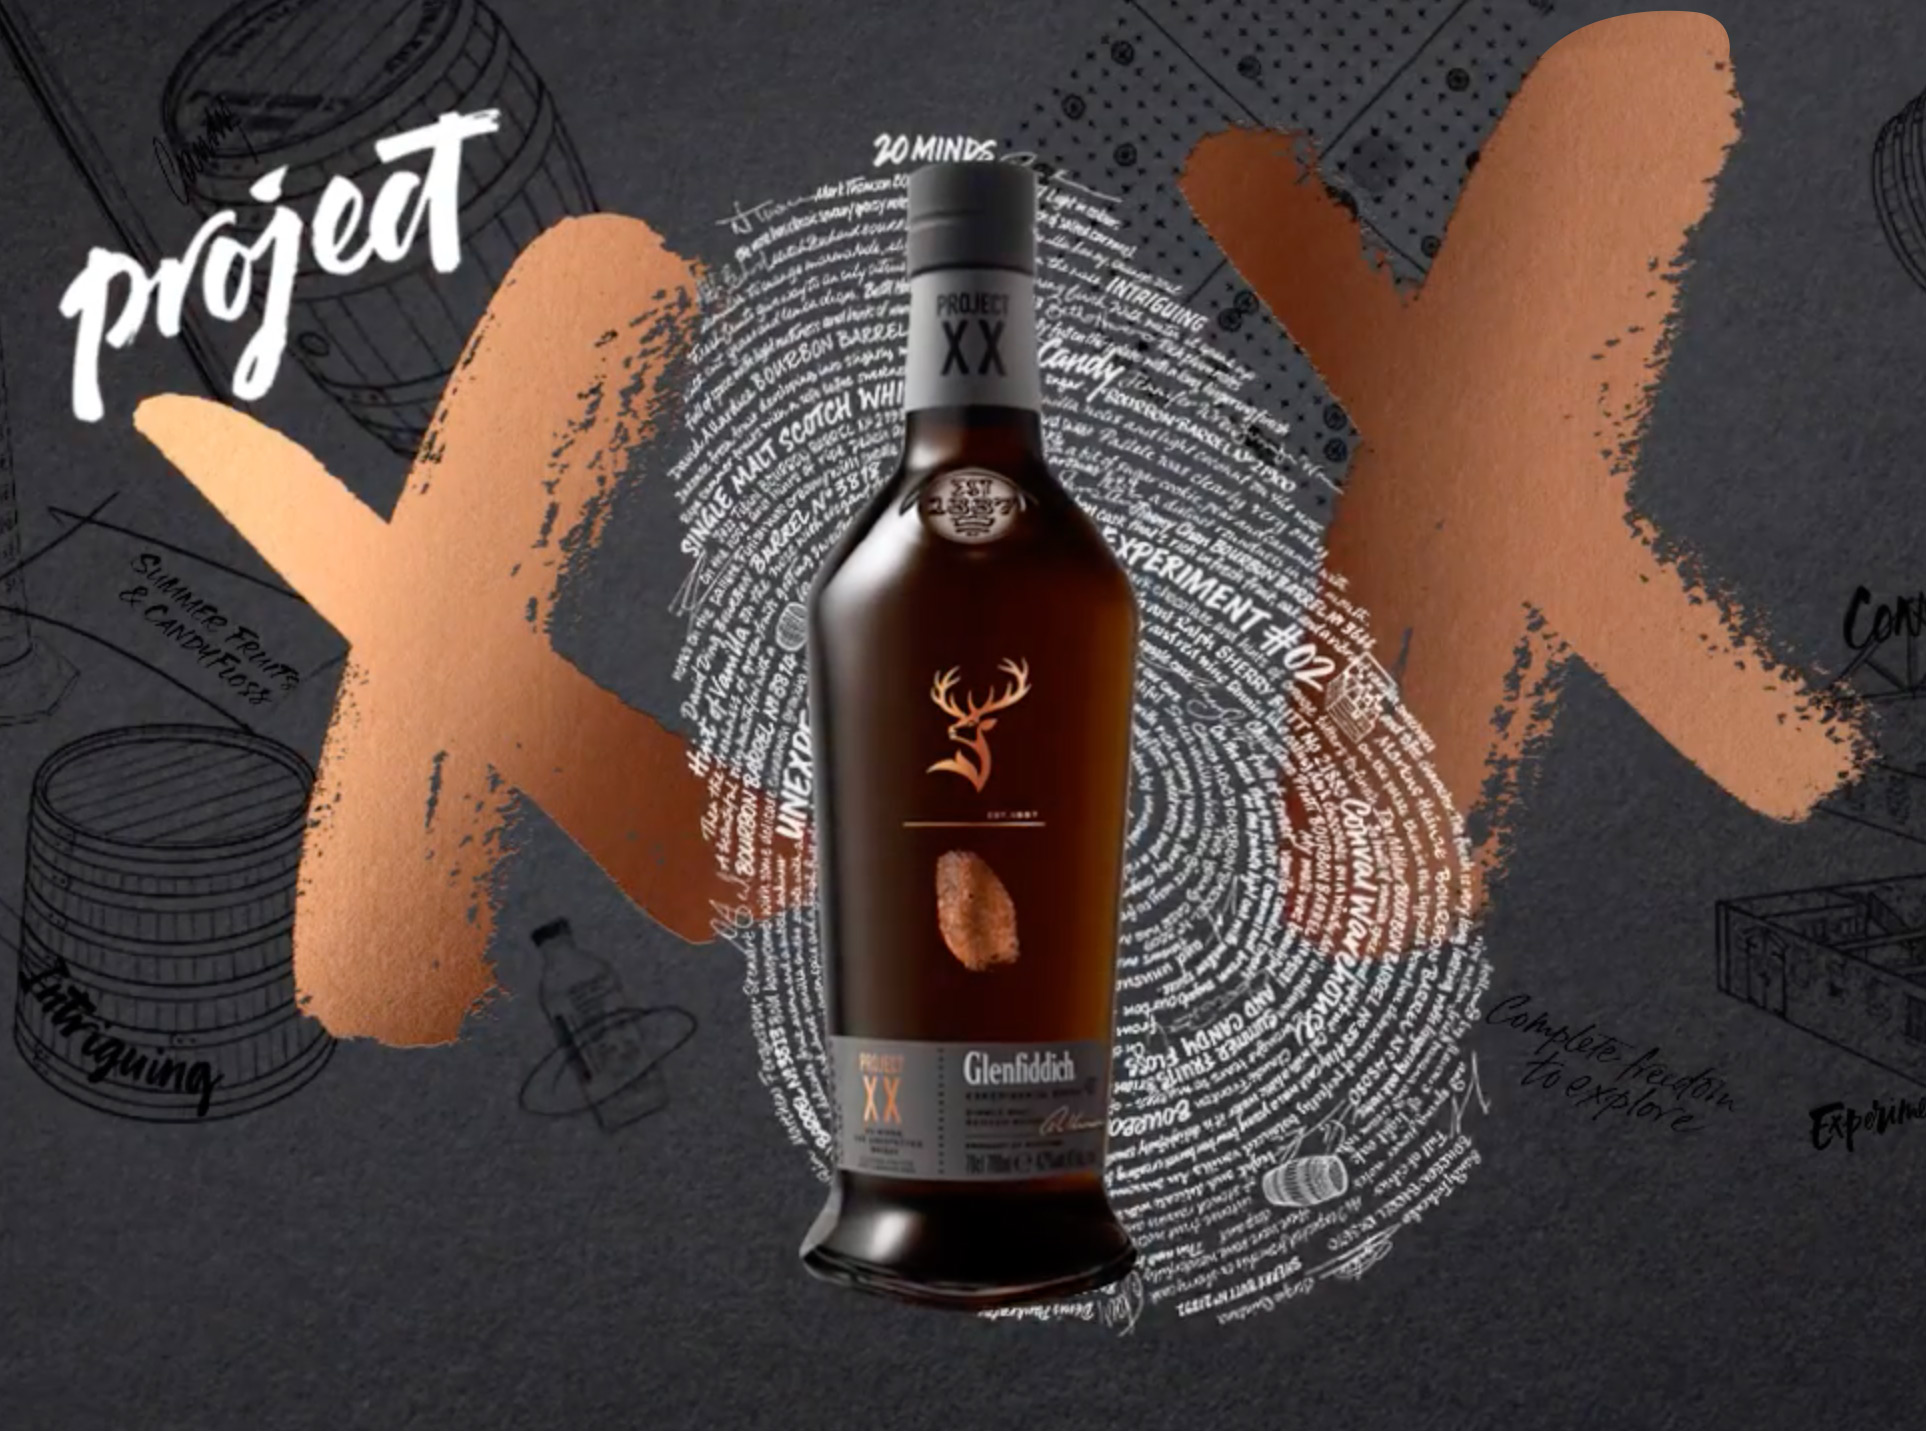 20 of the whisky industry's most exceptional minds came together to create Project XX, a truly unique, pioneering single malt expression. We created lots of moving image content to build excitement around the launch of this innovative new whisky. -